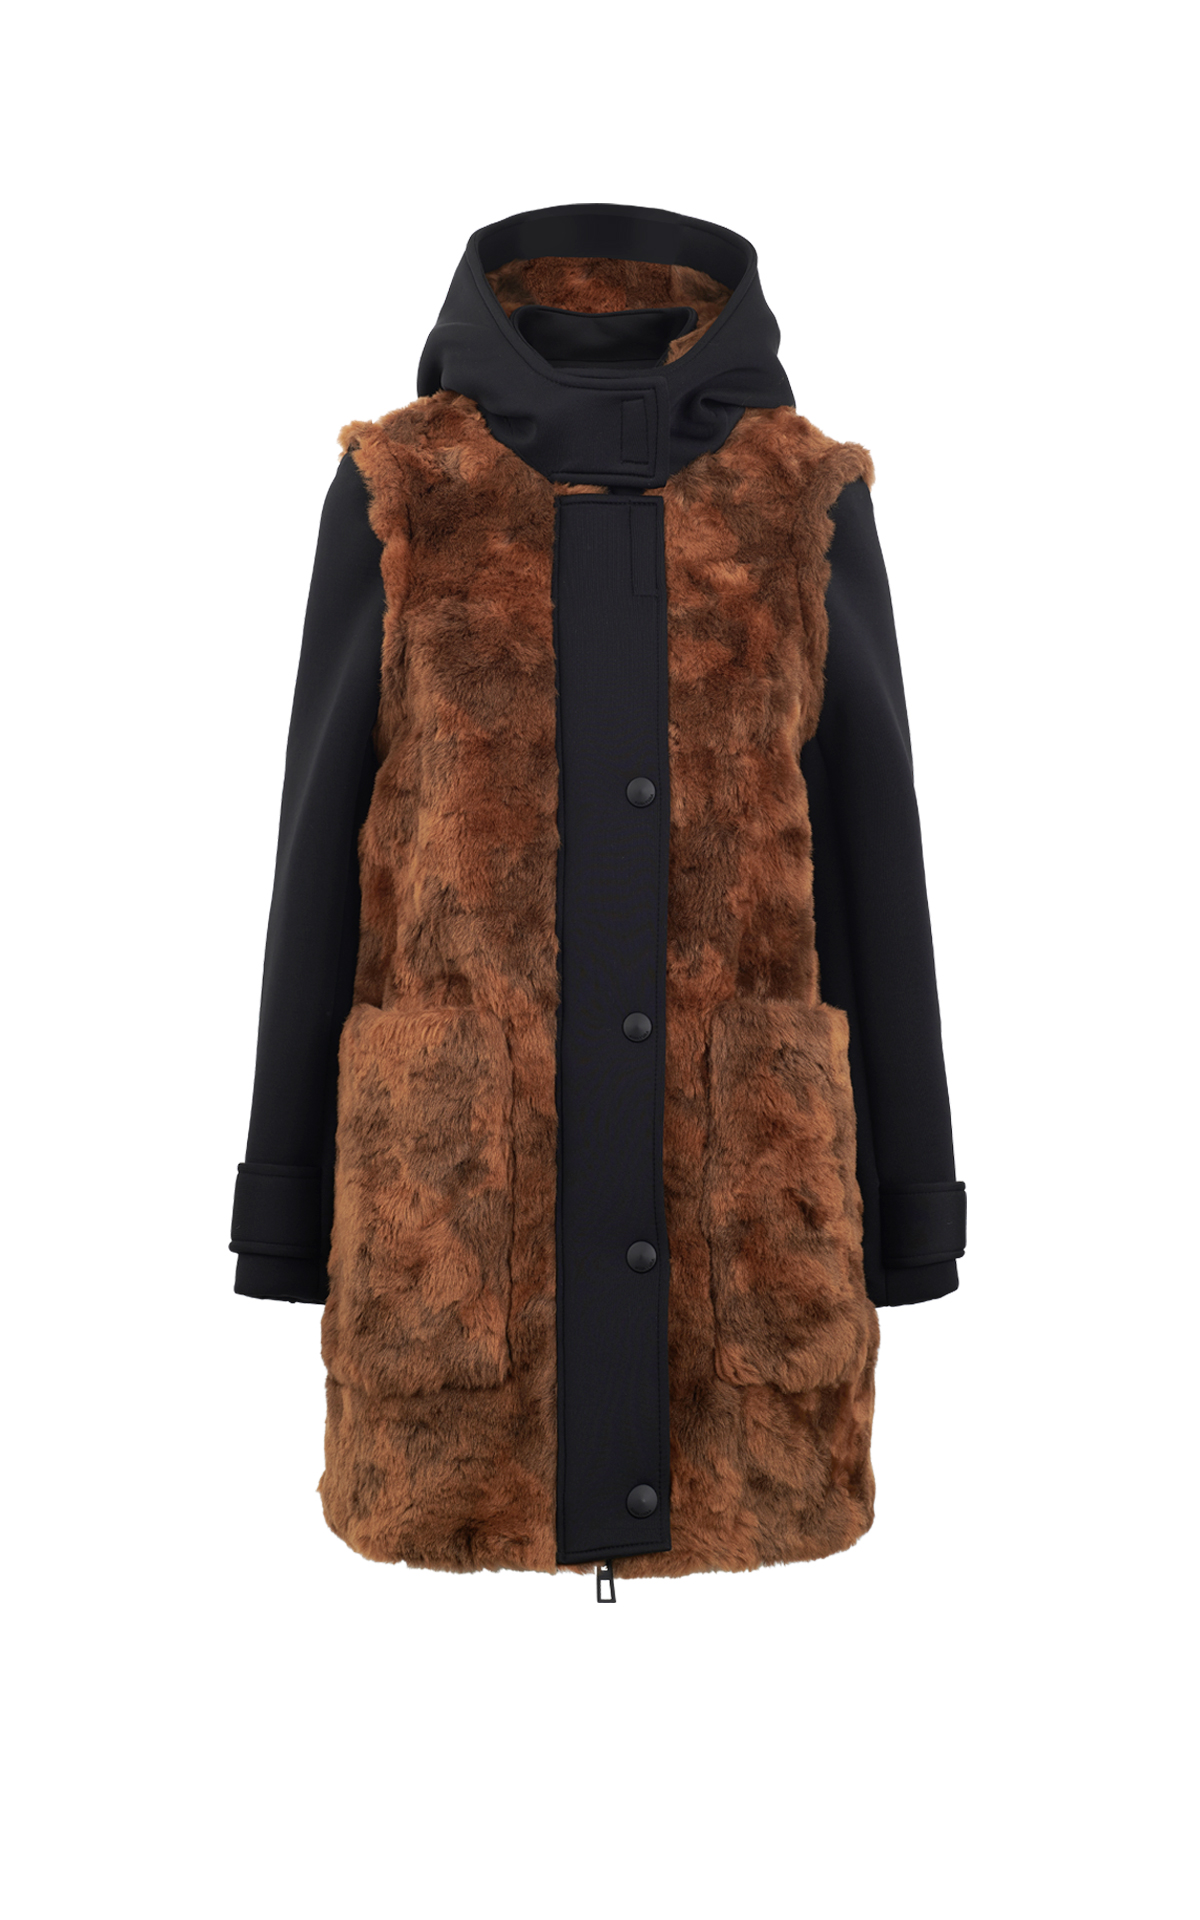 Long coat with brown fur Bimba y Lola